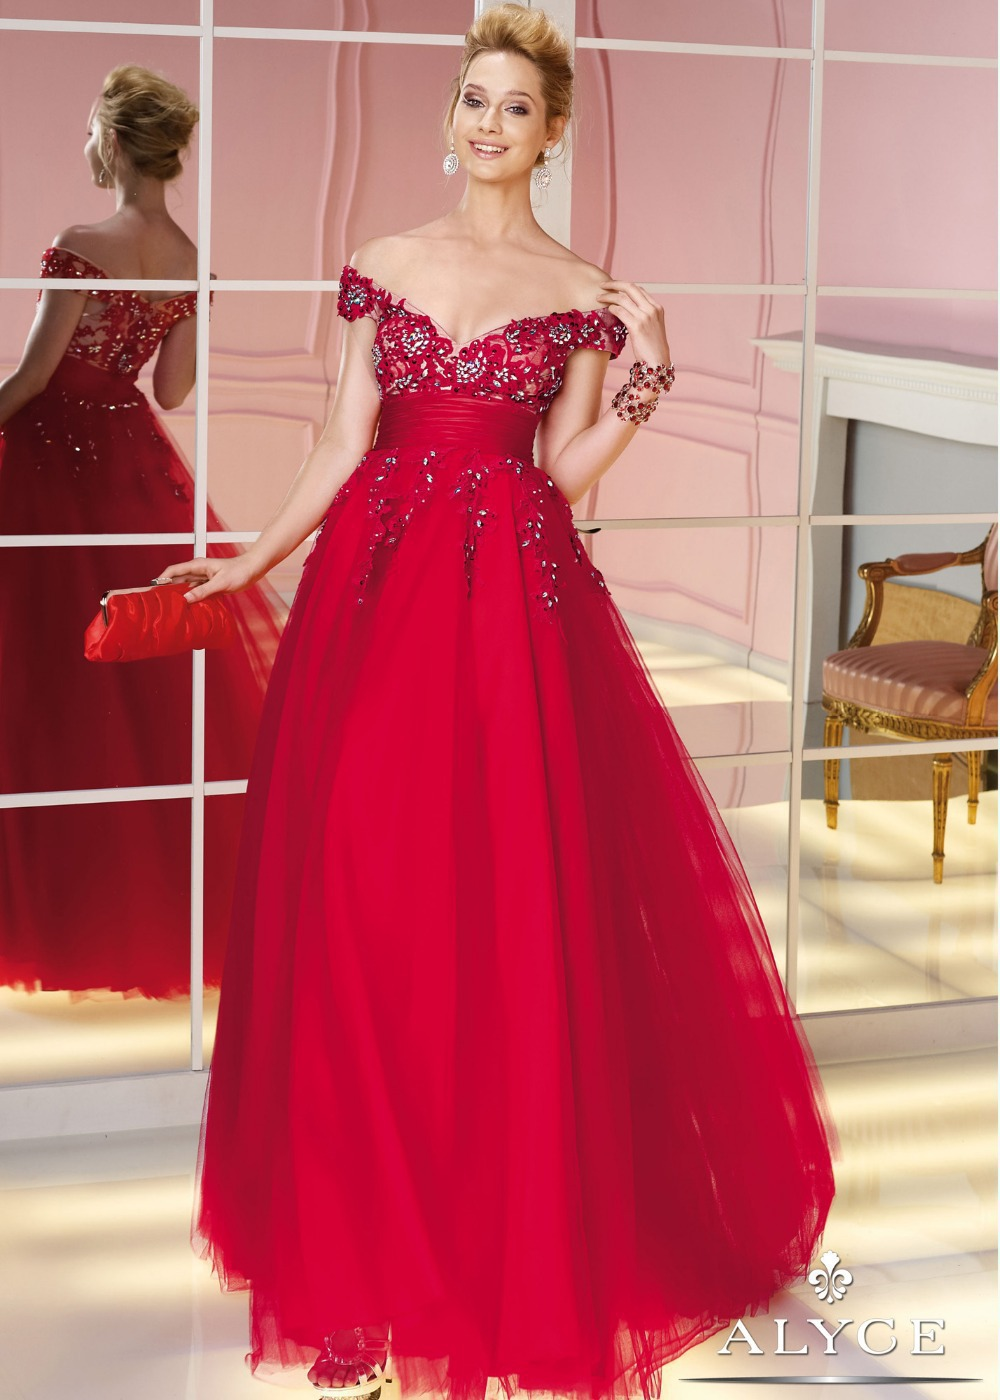 Passionate Red Fashion Design Off The Shoulder A-line Long With Crystals Formal Evening Dresses Gowns(China (Mainland))